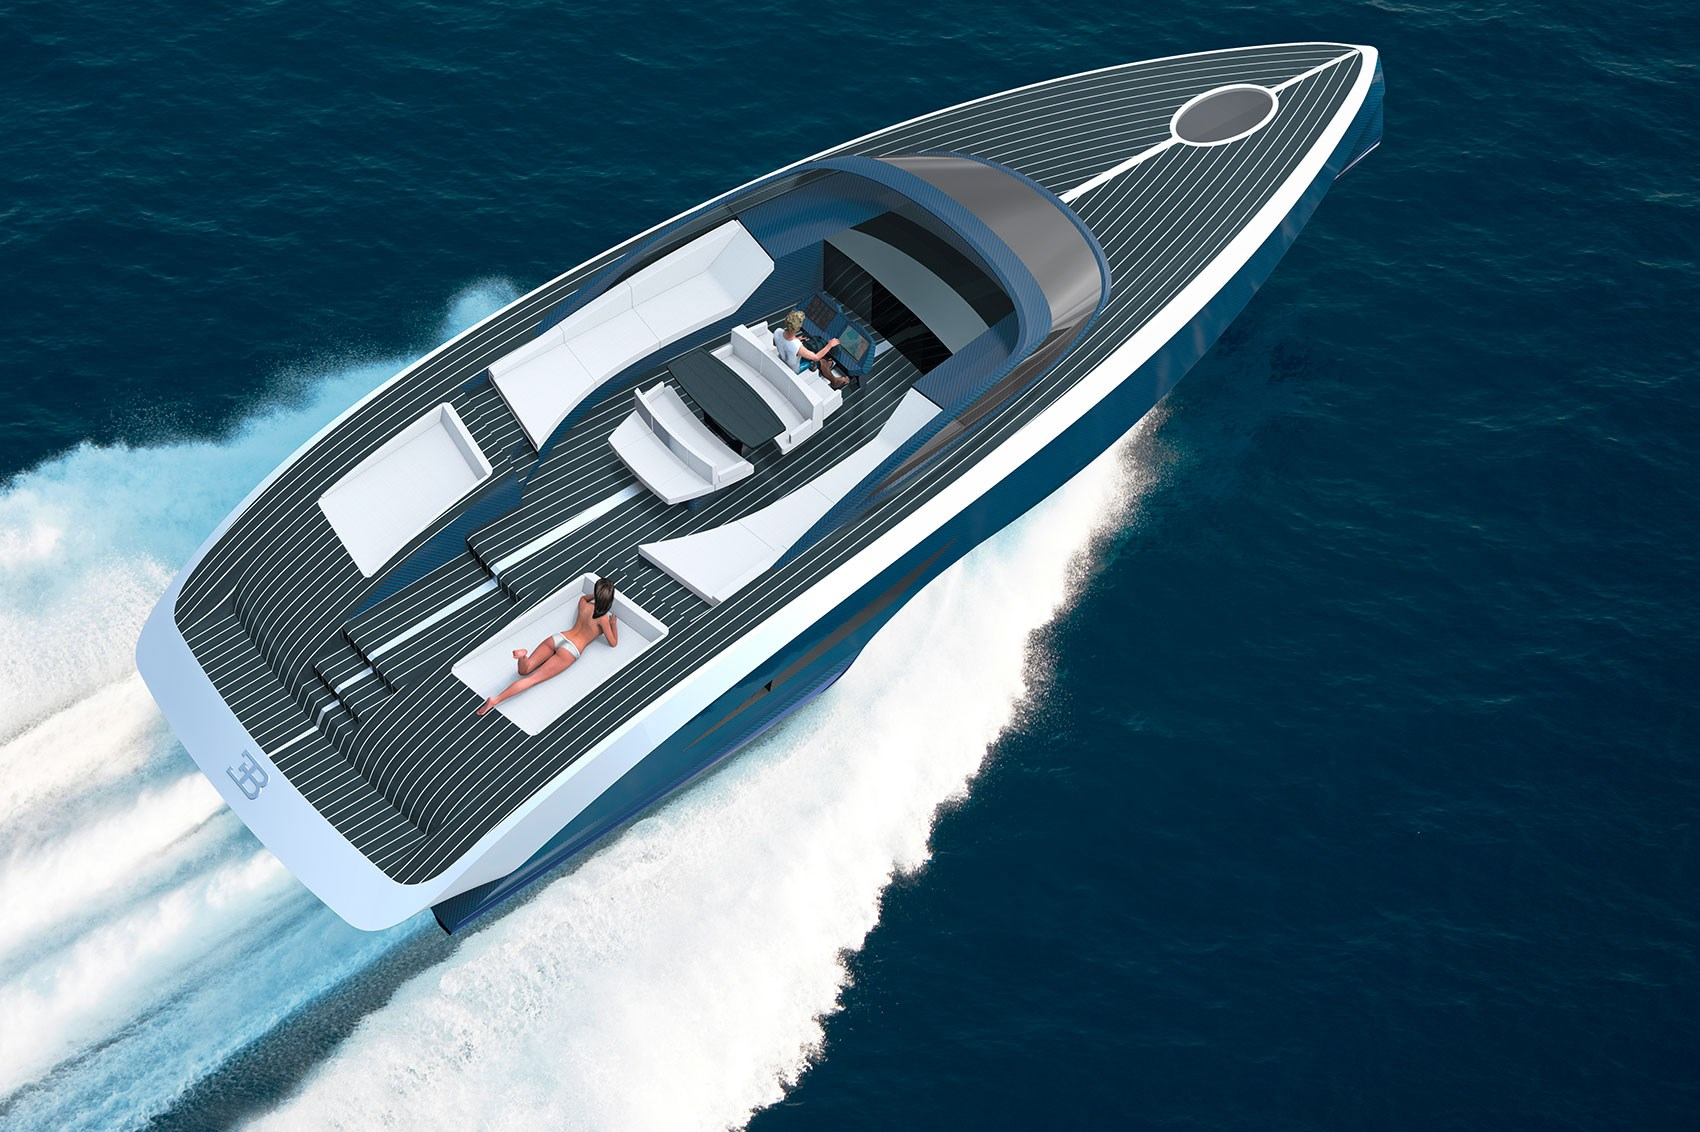 Charmant The New Bugatti Palmer Johnson Niniette Motor Yacht, Topless Bather Not  Included ...